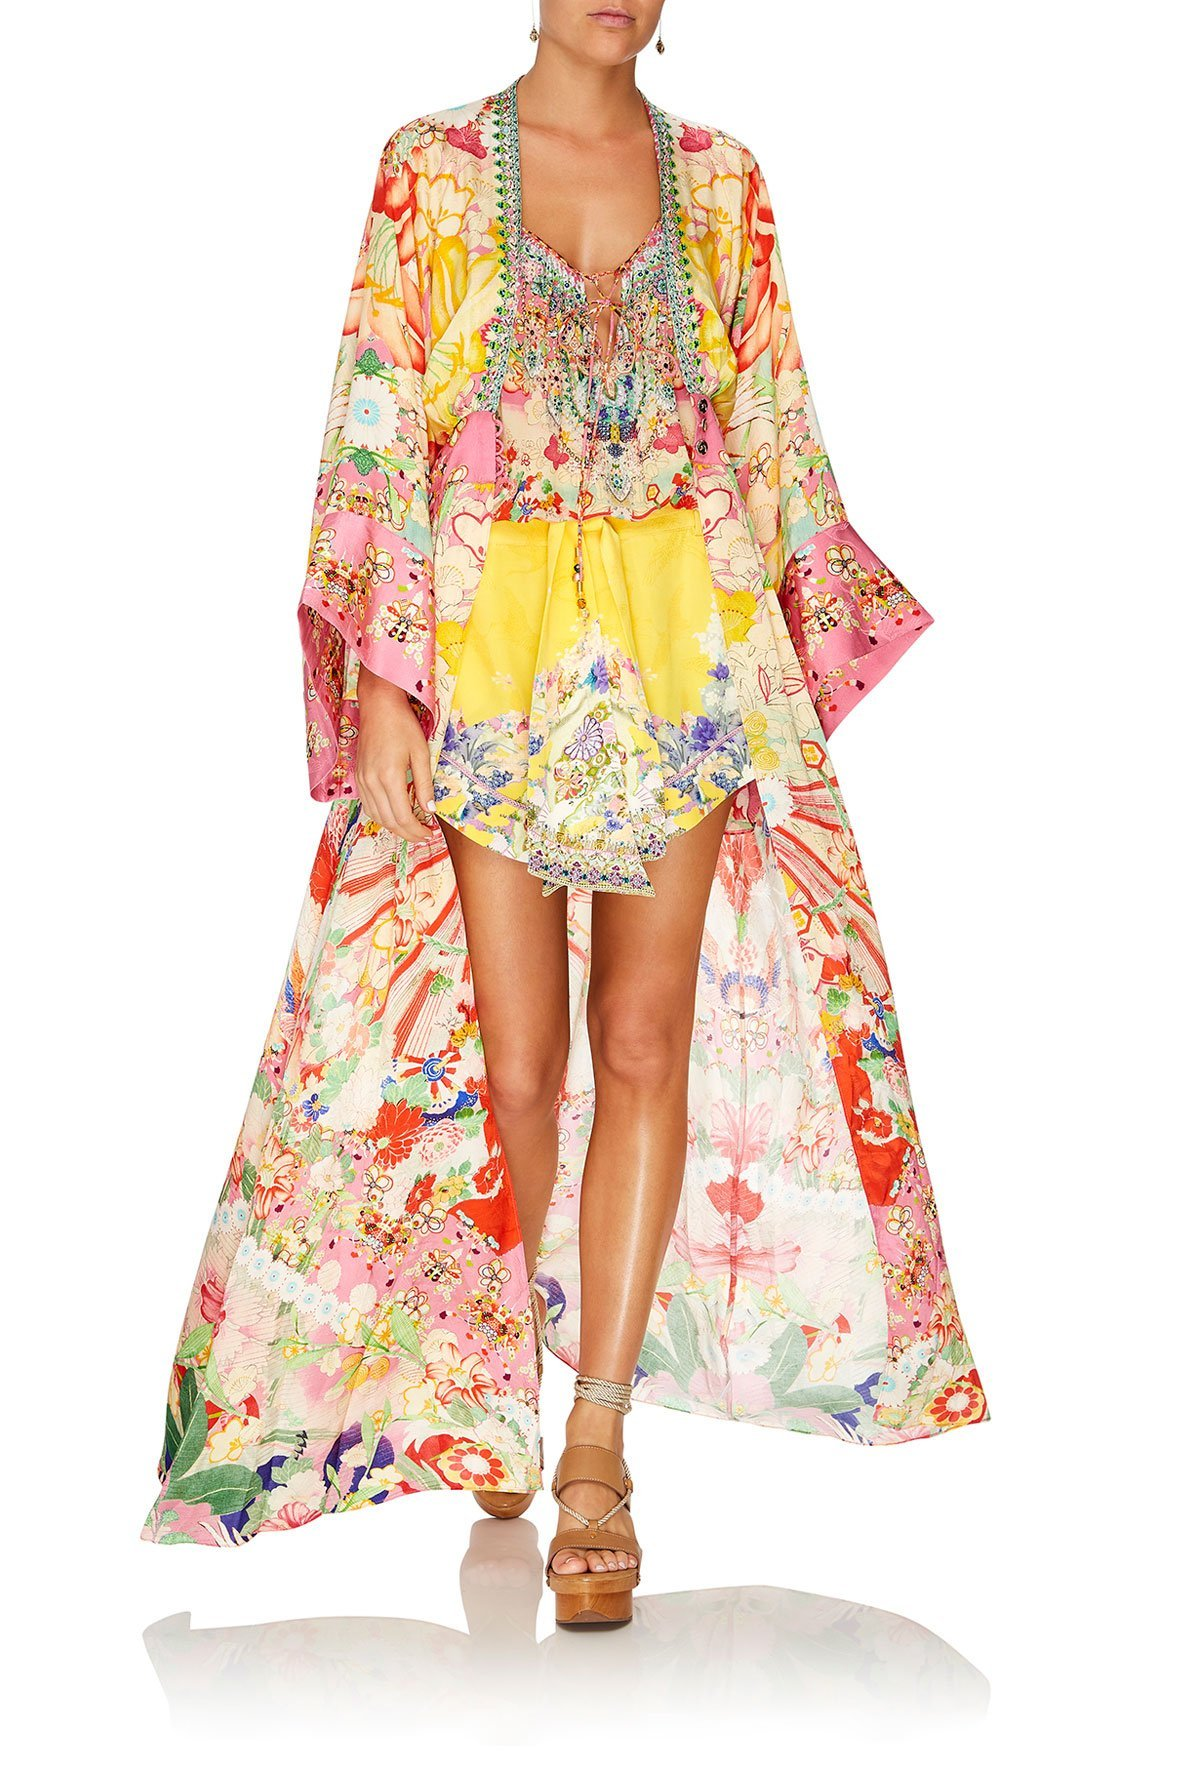 camilla_robe_with_elastic_back_waist_kimono_kisses_1_1024x1024@2x